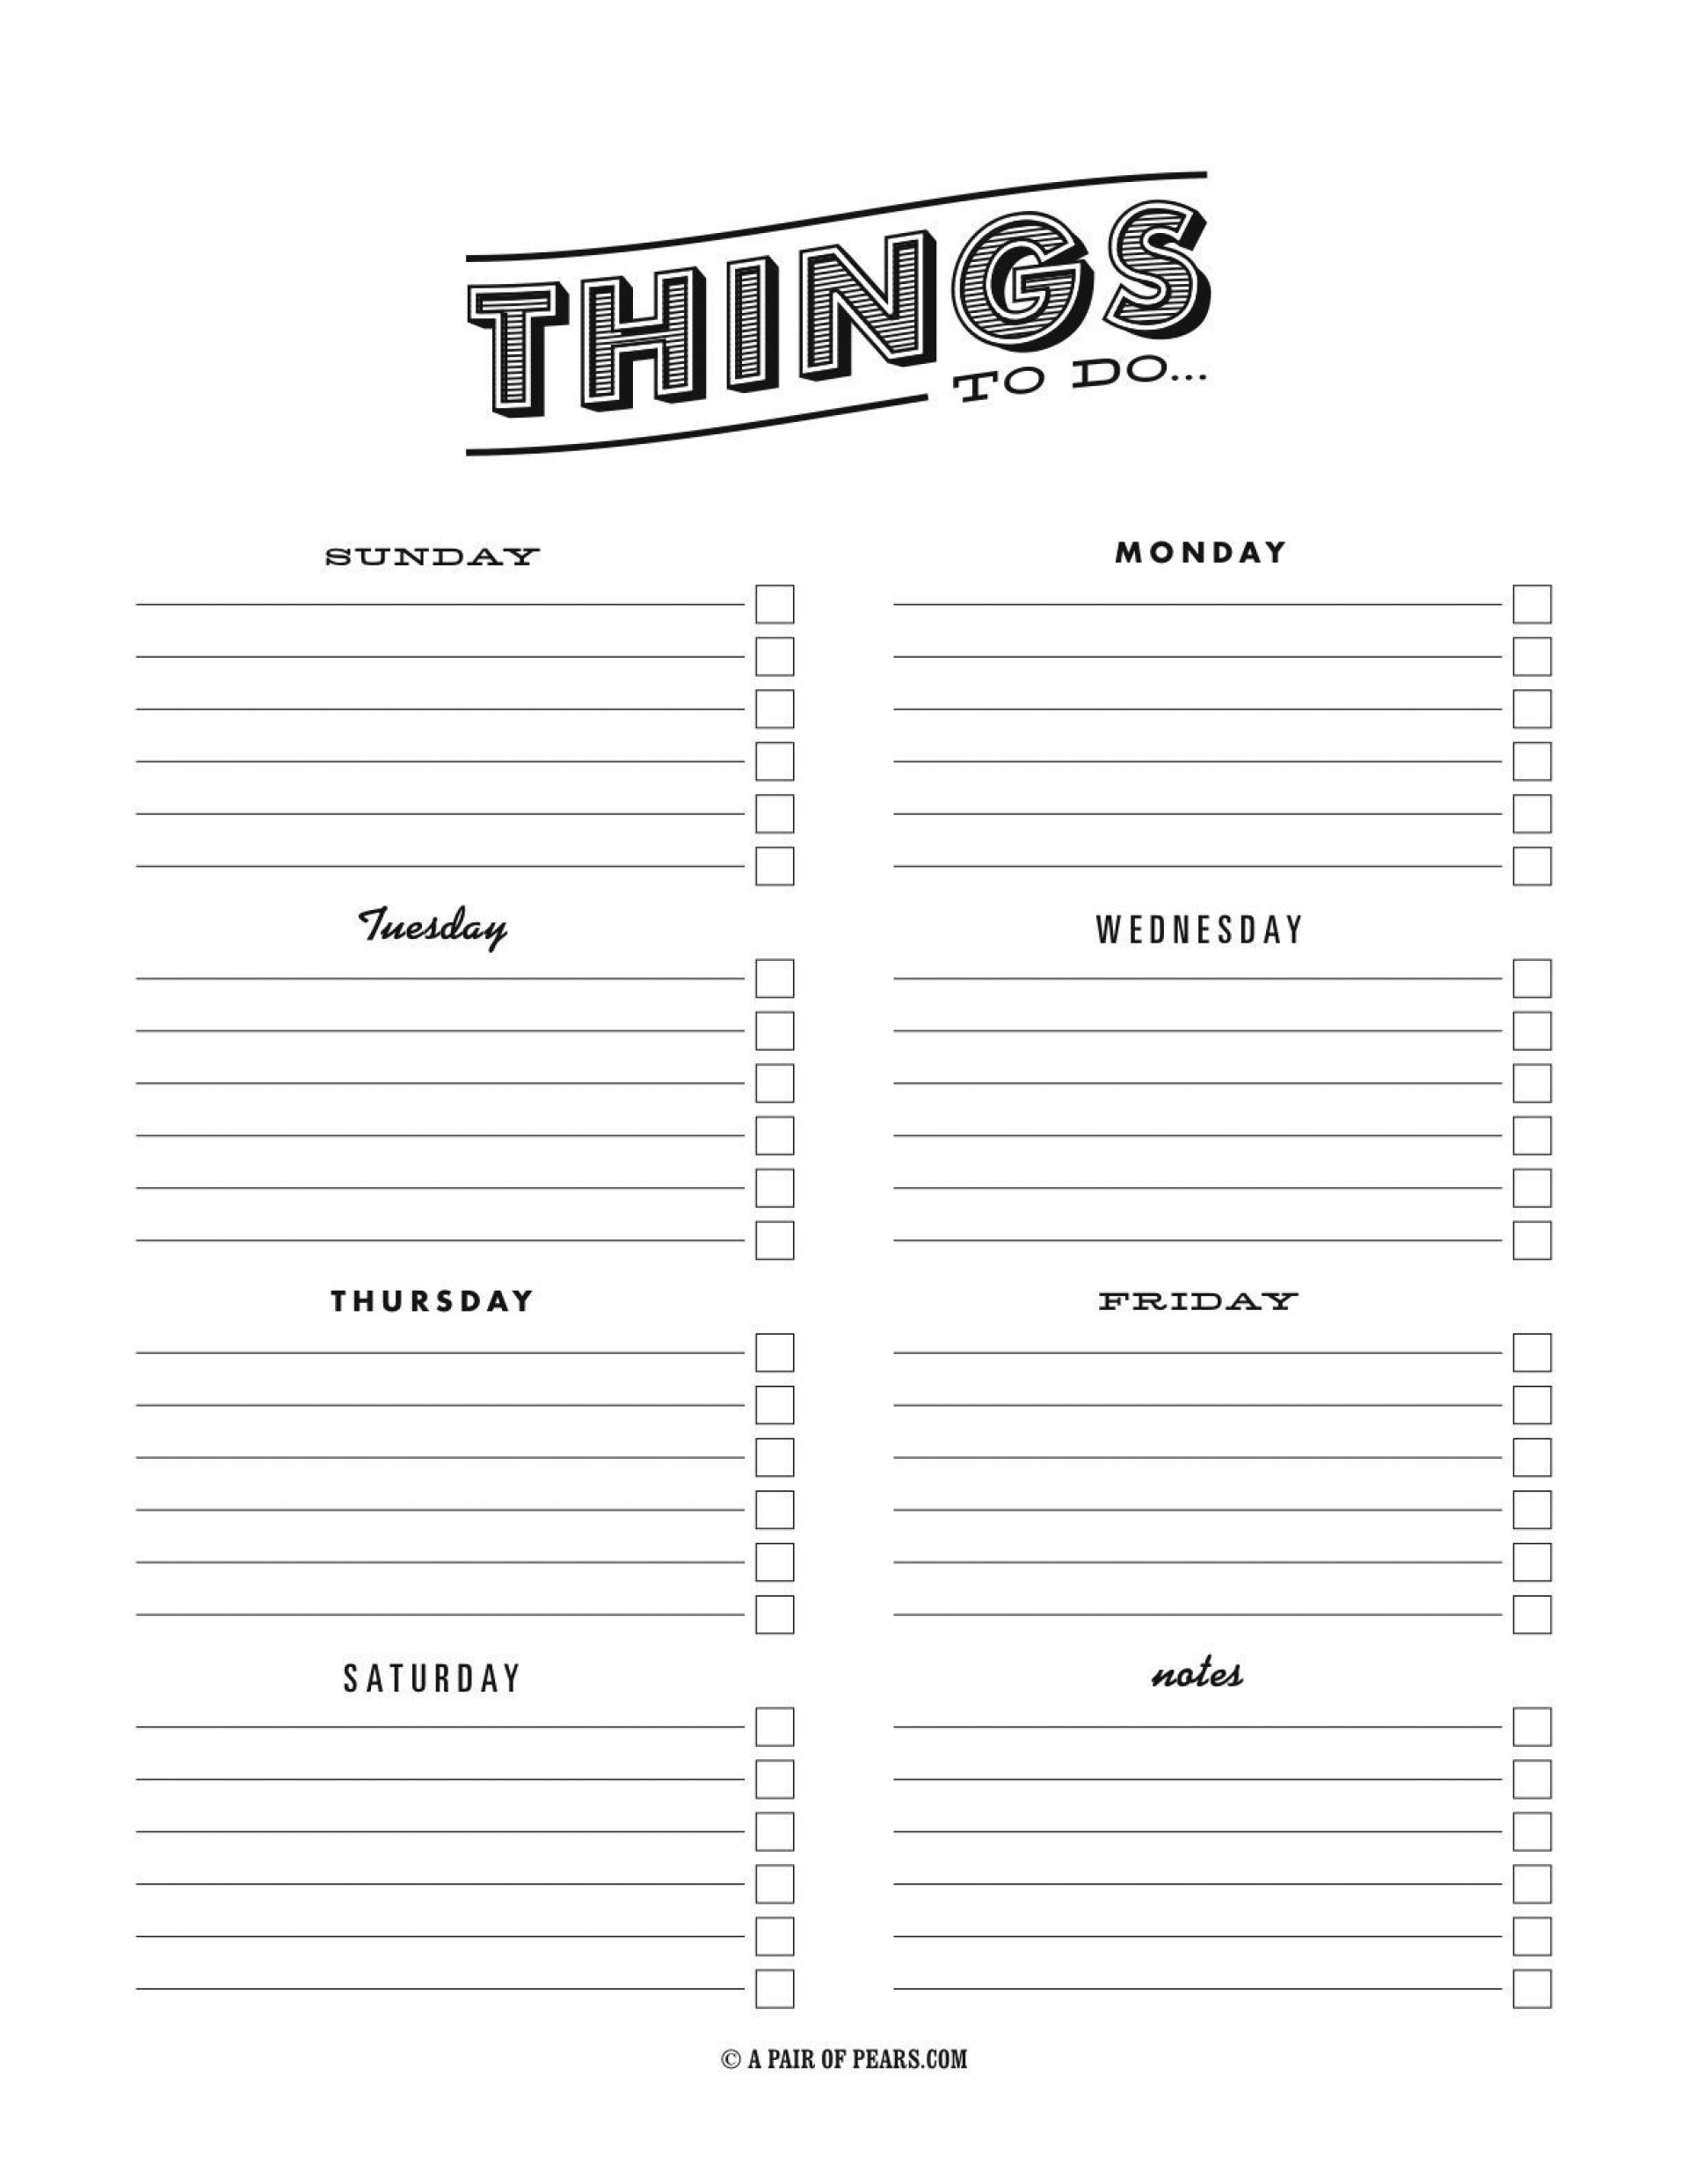 003 Astounding Thing To Do List Template Design 1920